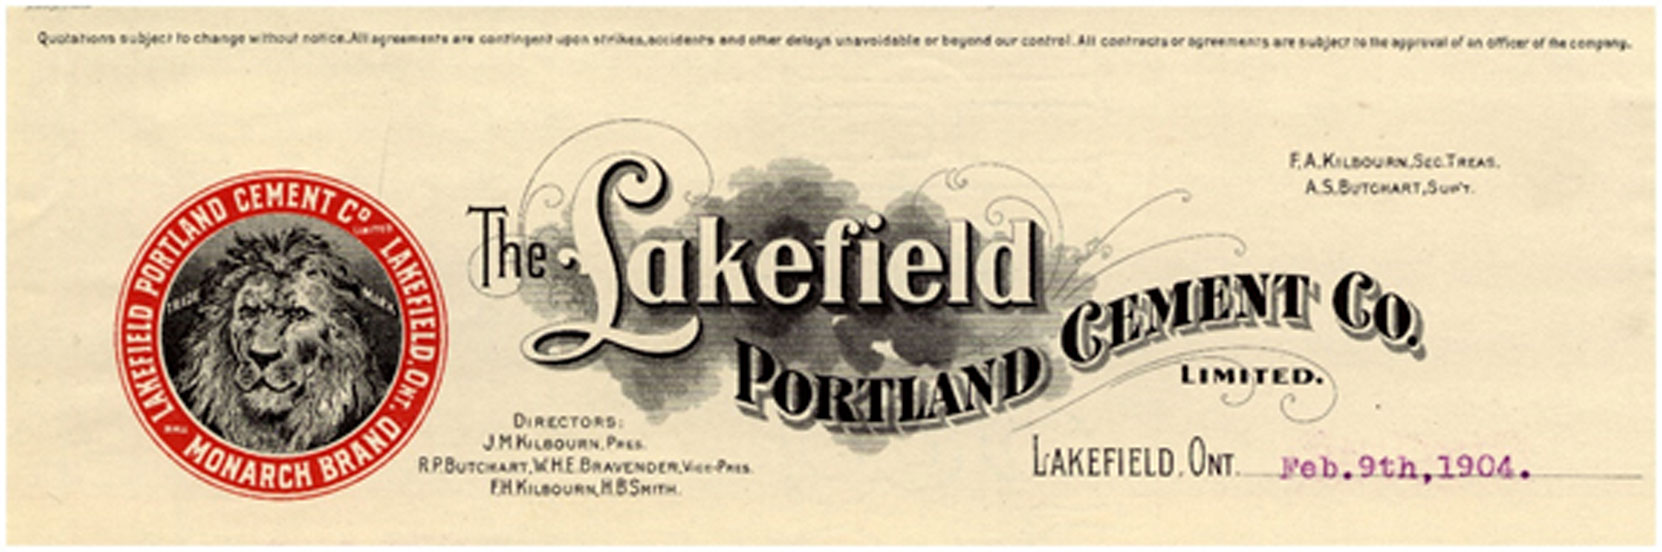 Lakefield Portland Cement Company letterhead, 1904 (Author's collection)